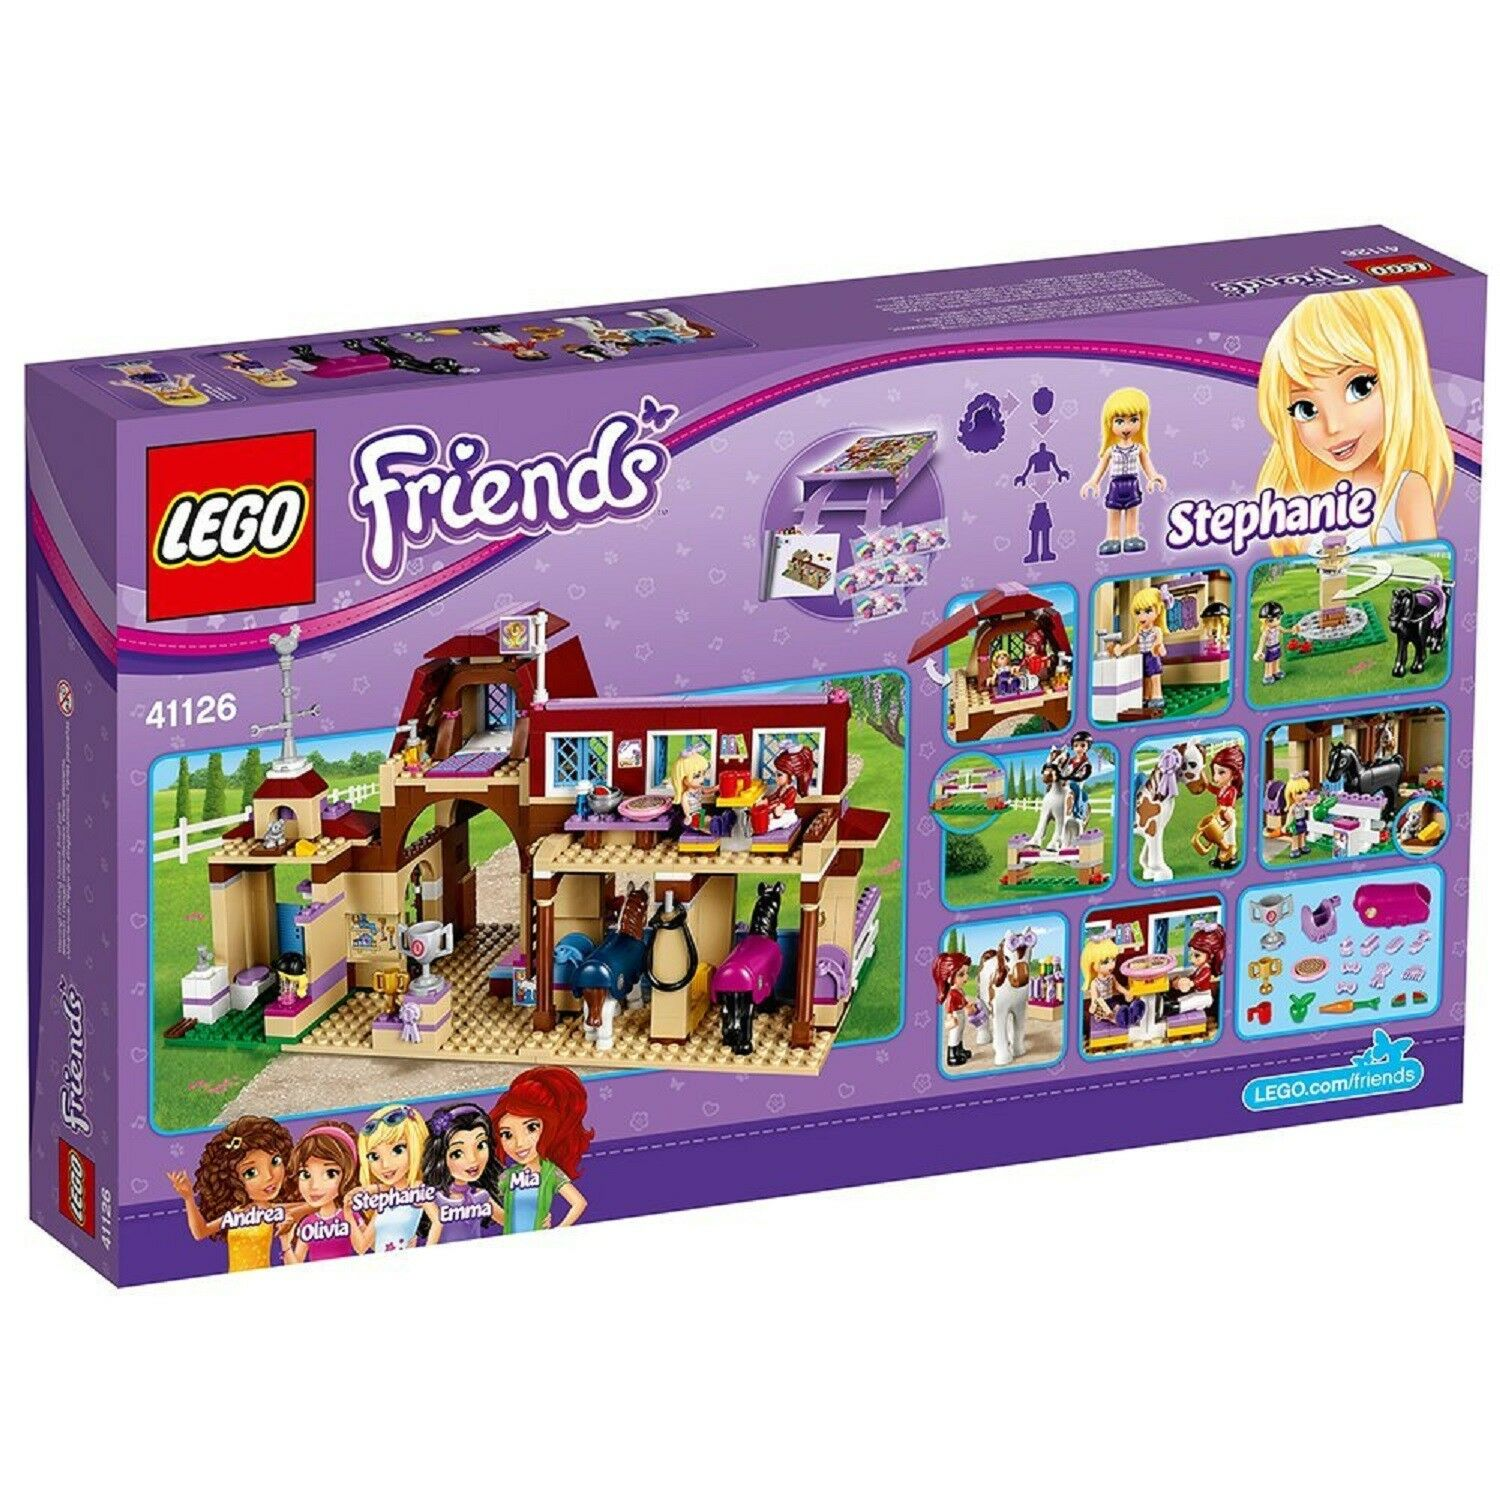 LEGO 41126 Friends Heartlake Riding Club Construction with Minifigures Set Kids